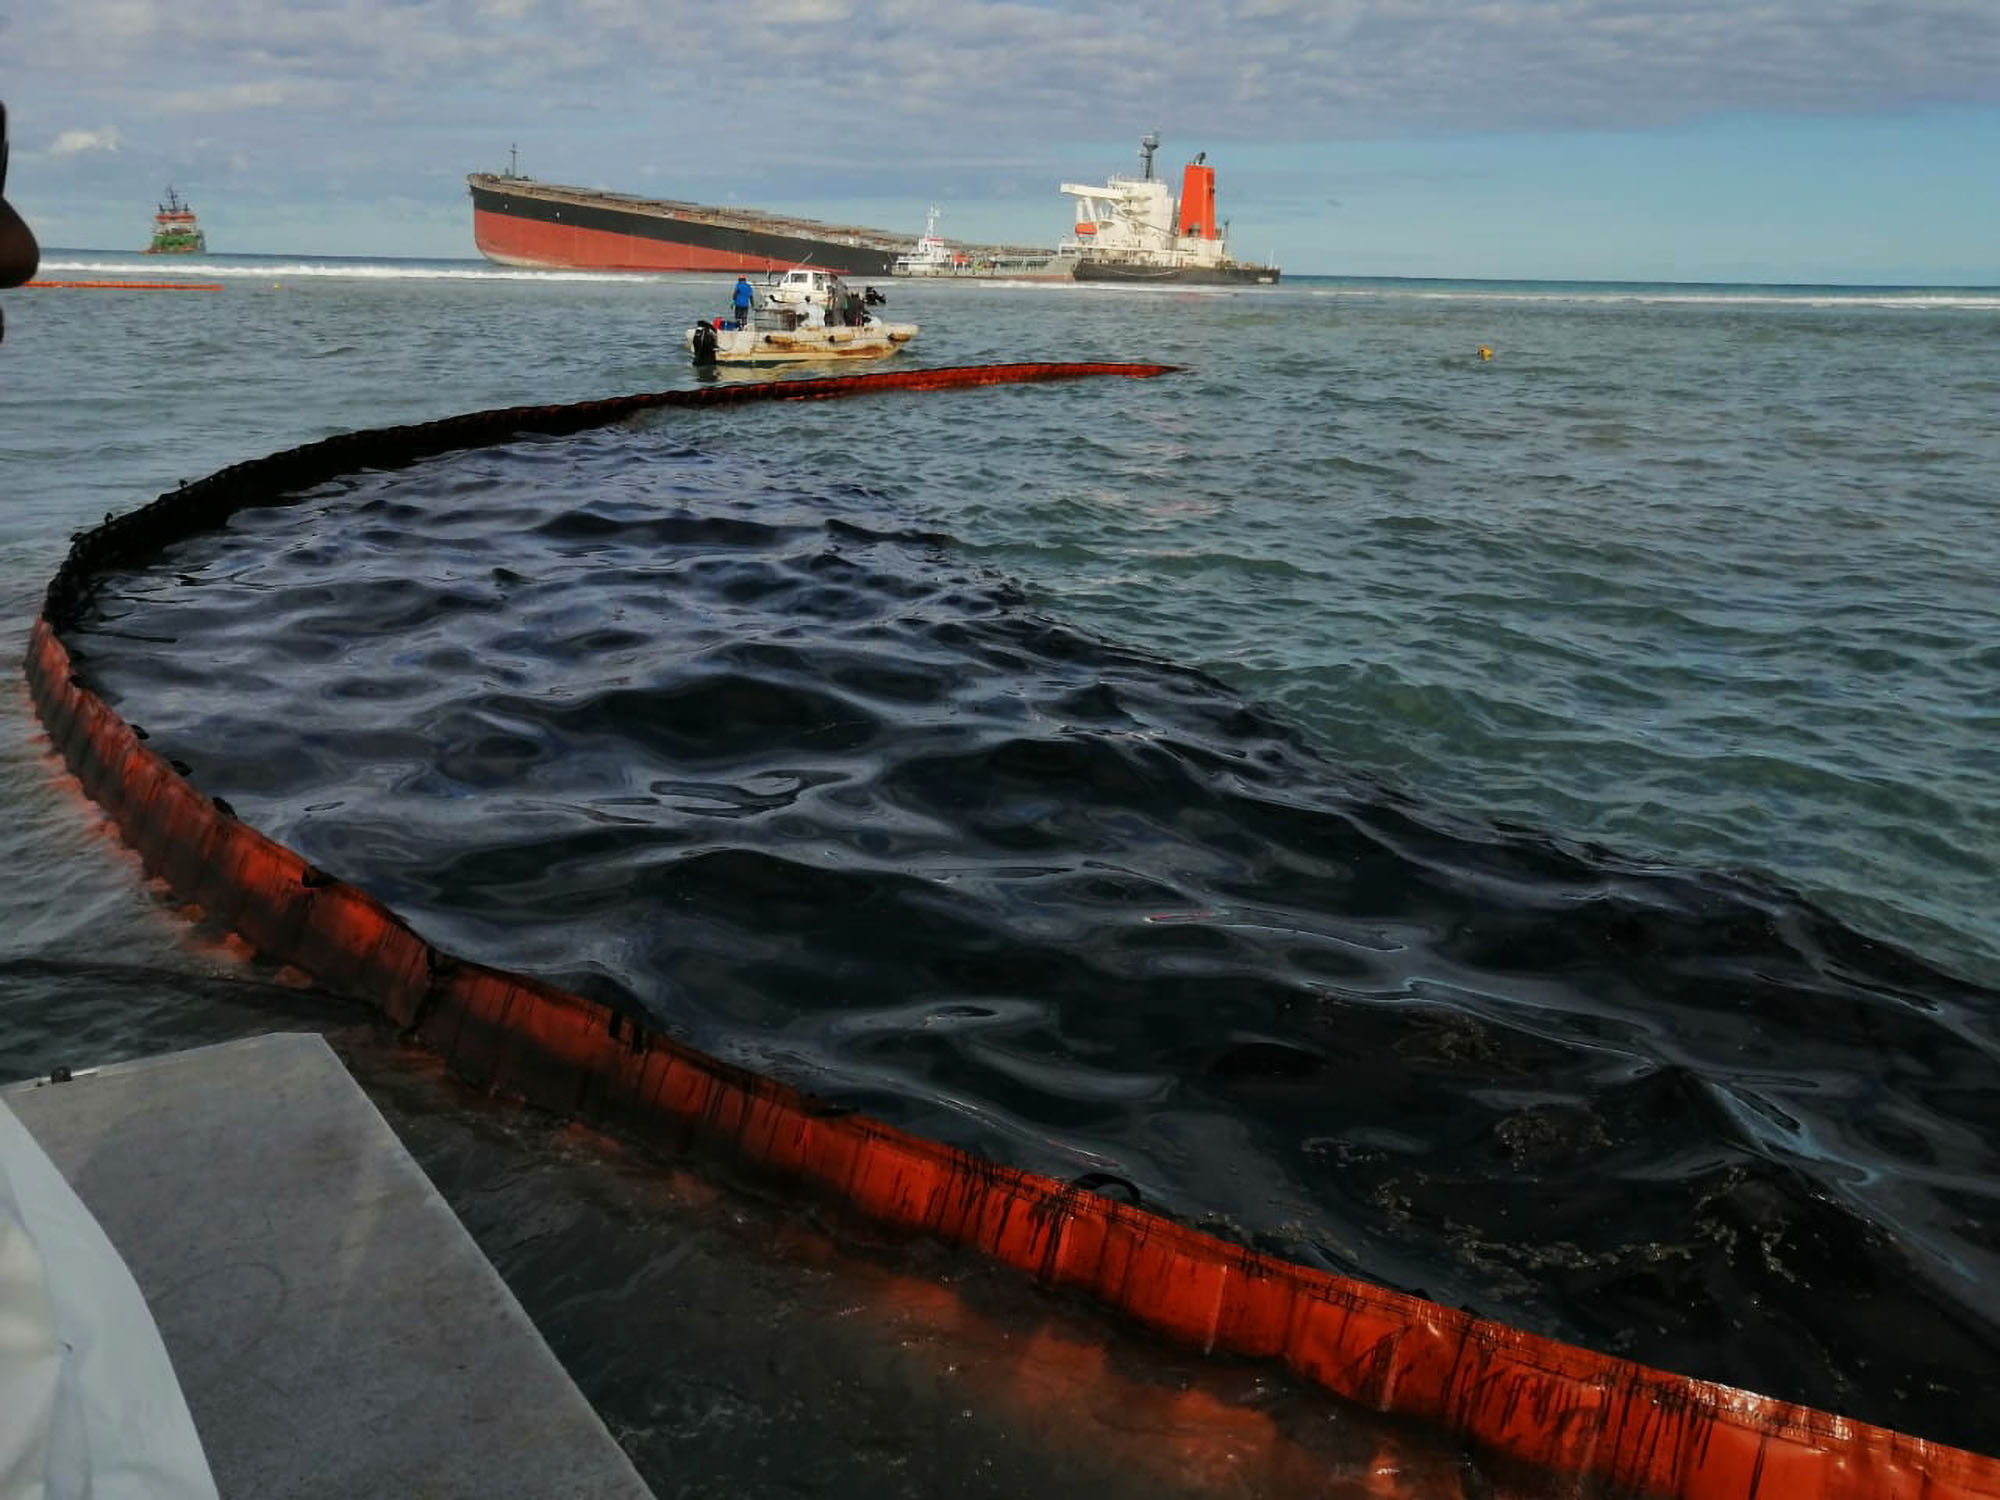 Towing and Sinking Leaking Fuel Tanker 'the Worst' Option: Environmentalists